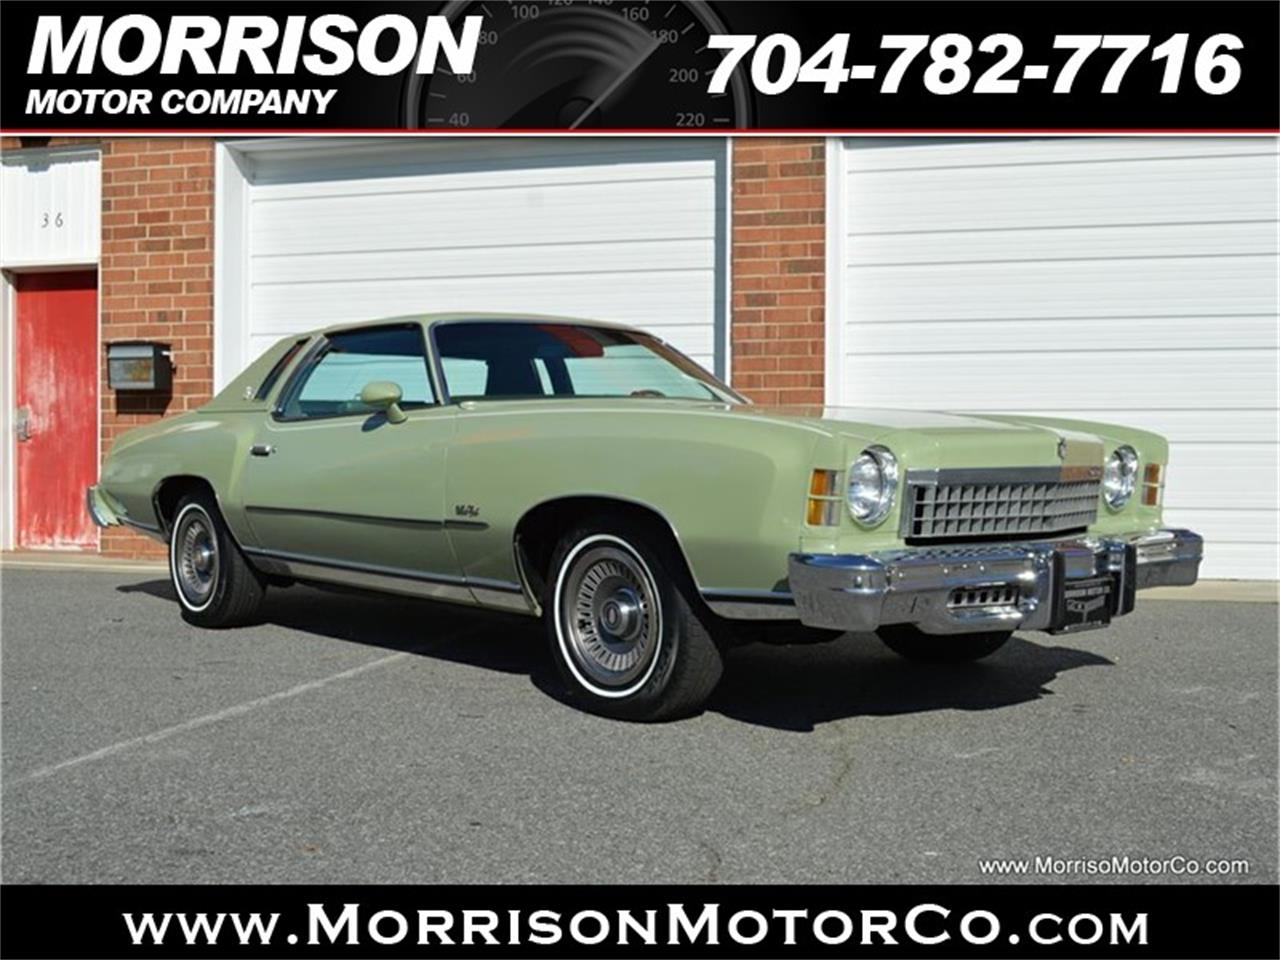 Large Picture of '74 Monte Carlo Offered by Morrison Motor Company - PEZN